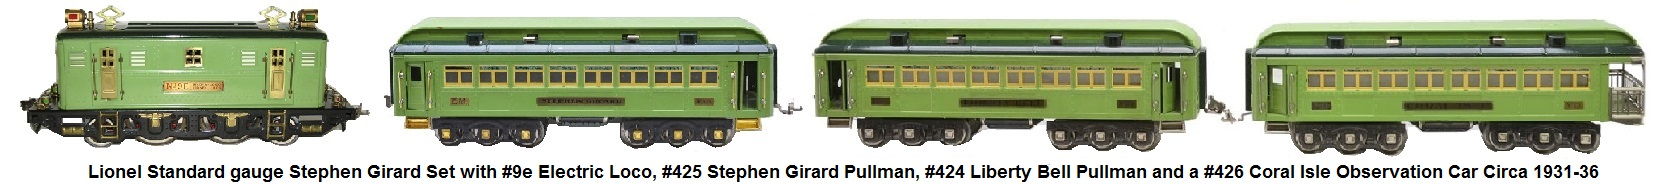 Lionel Standard gauge Stephen Girard Set from 1931-36 with #9e Electric loco, #425 Stephen Girard Pullman, #424 Liberty Bell Pullman and a #426 Coral Isle observation